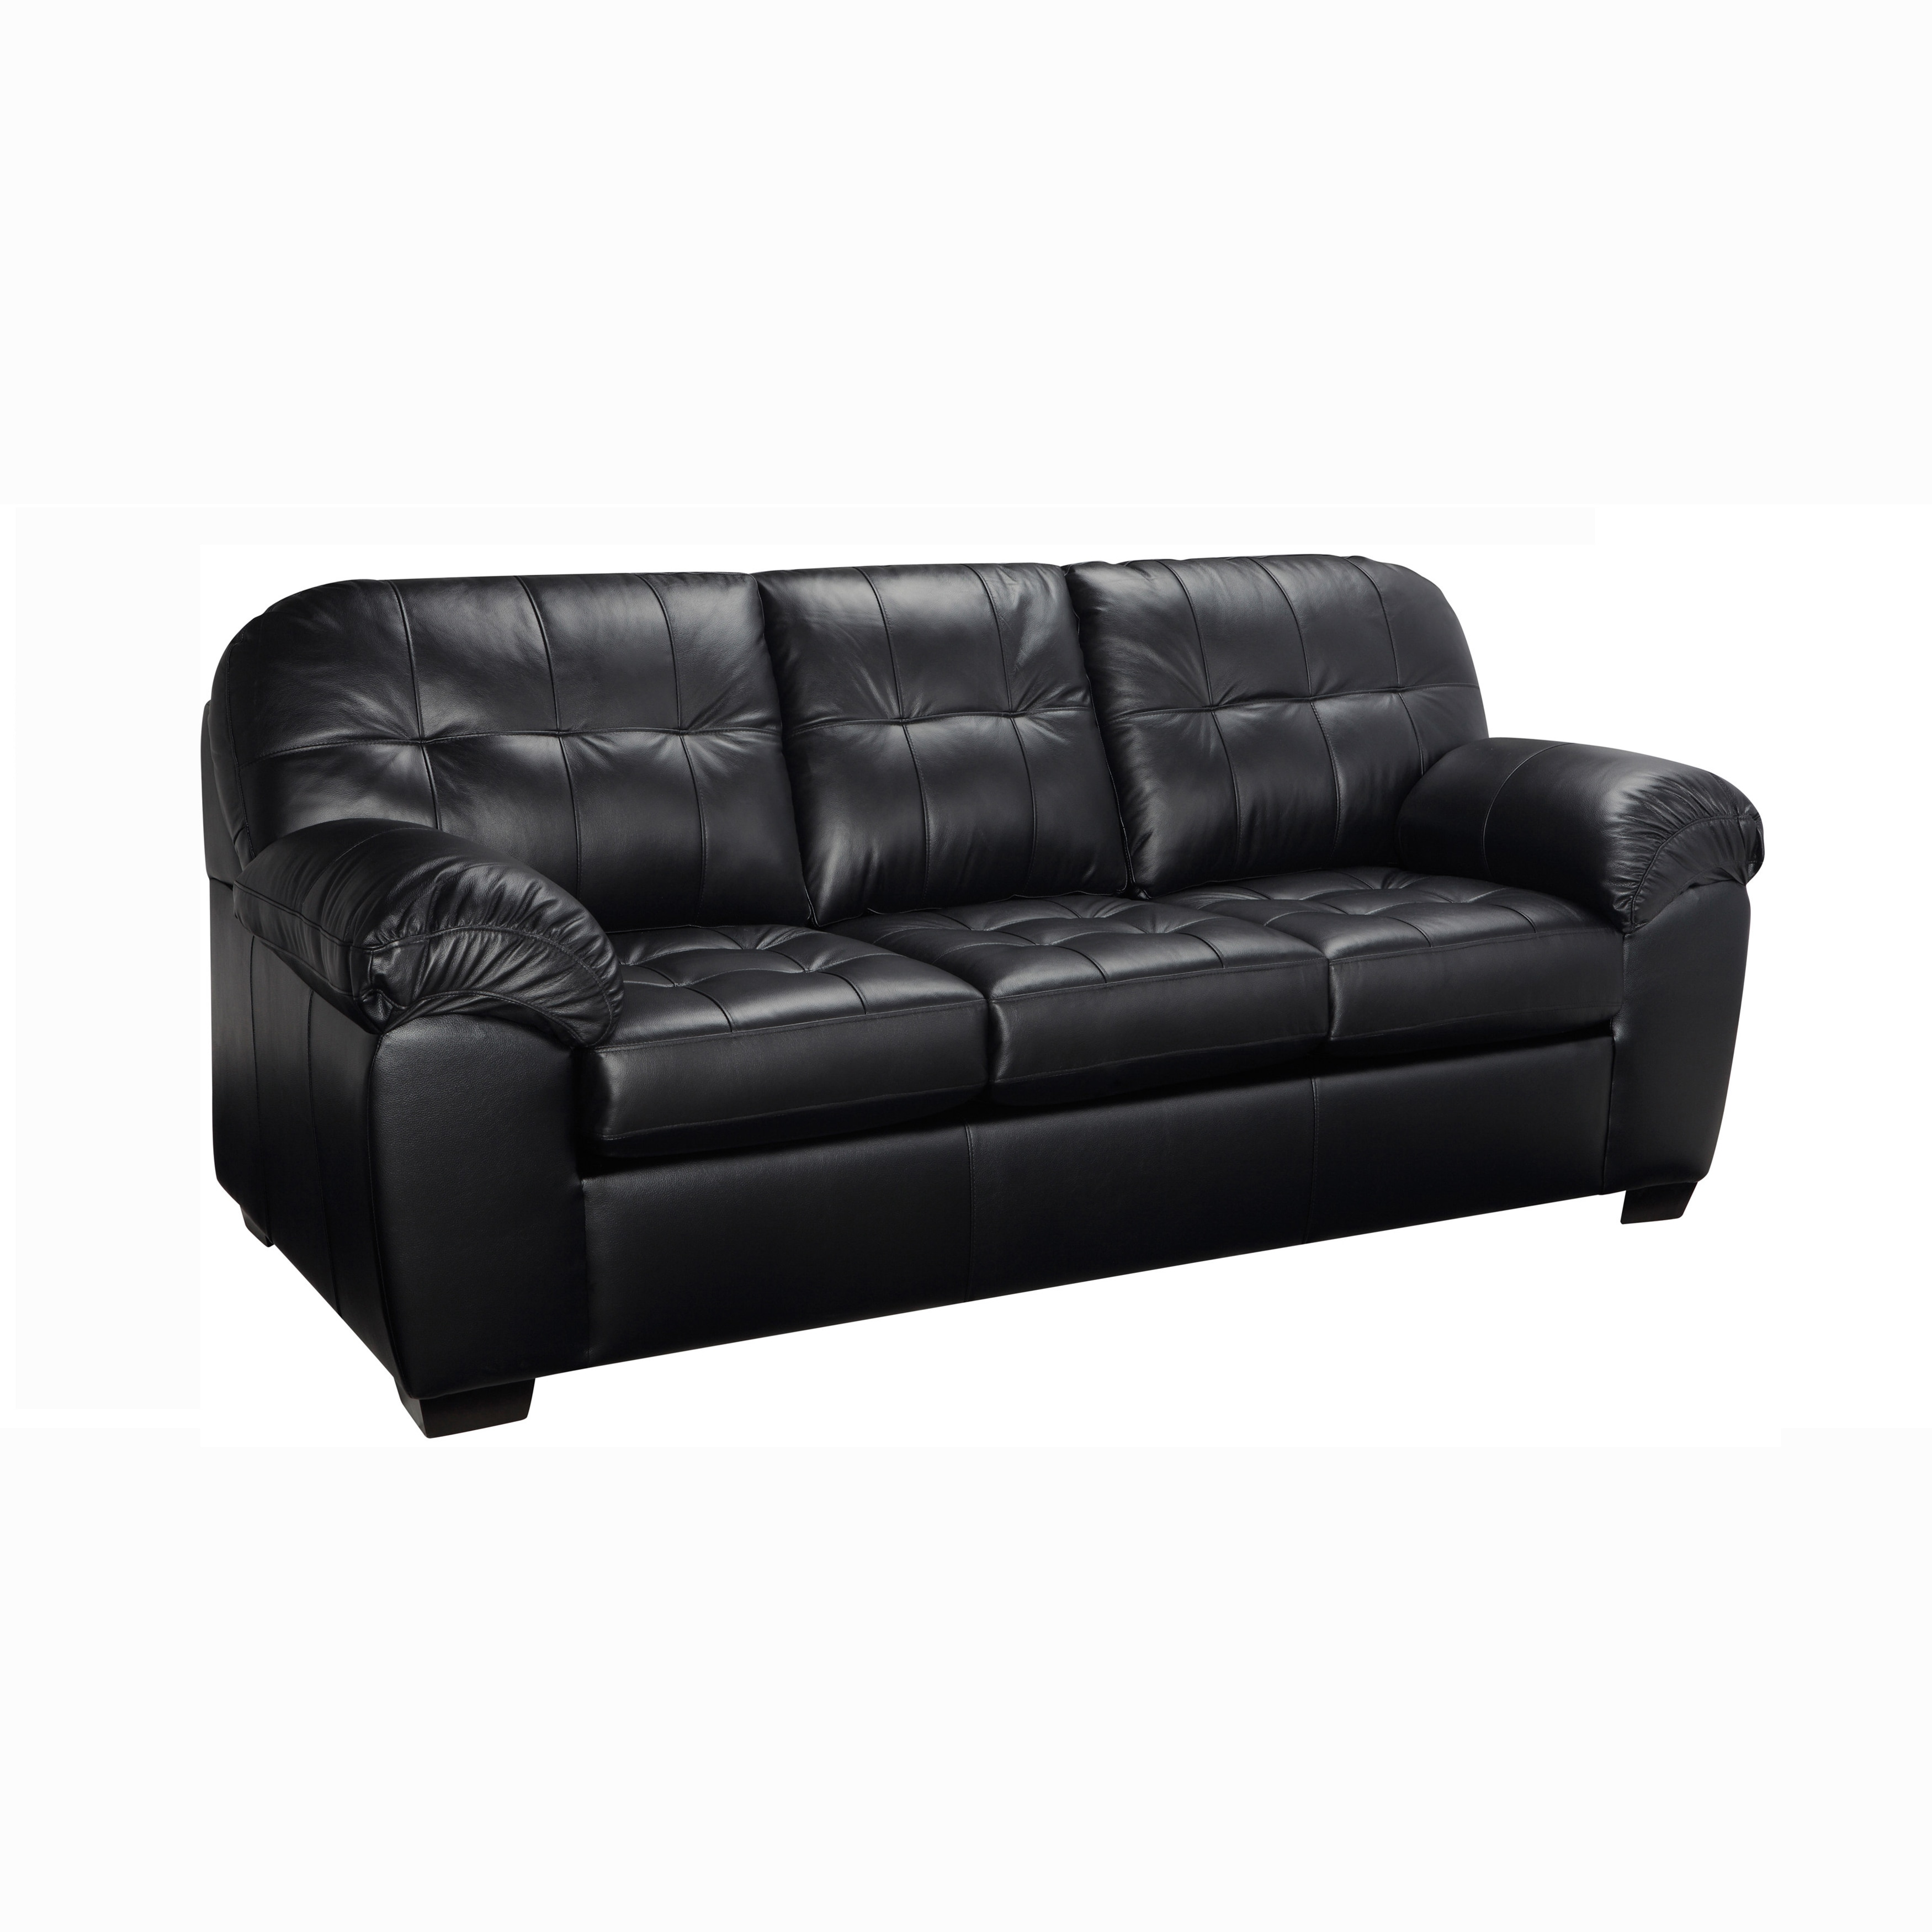 emma tufted sofa armless sofas design shop premium black top grain leather on sale free shipping today overstock com 18107908